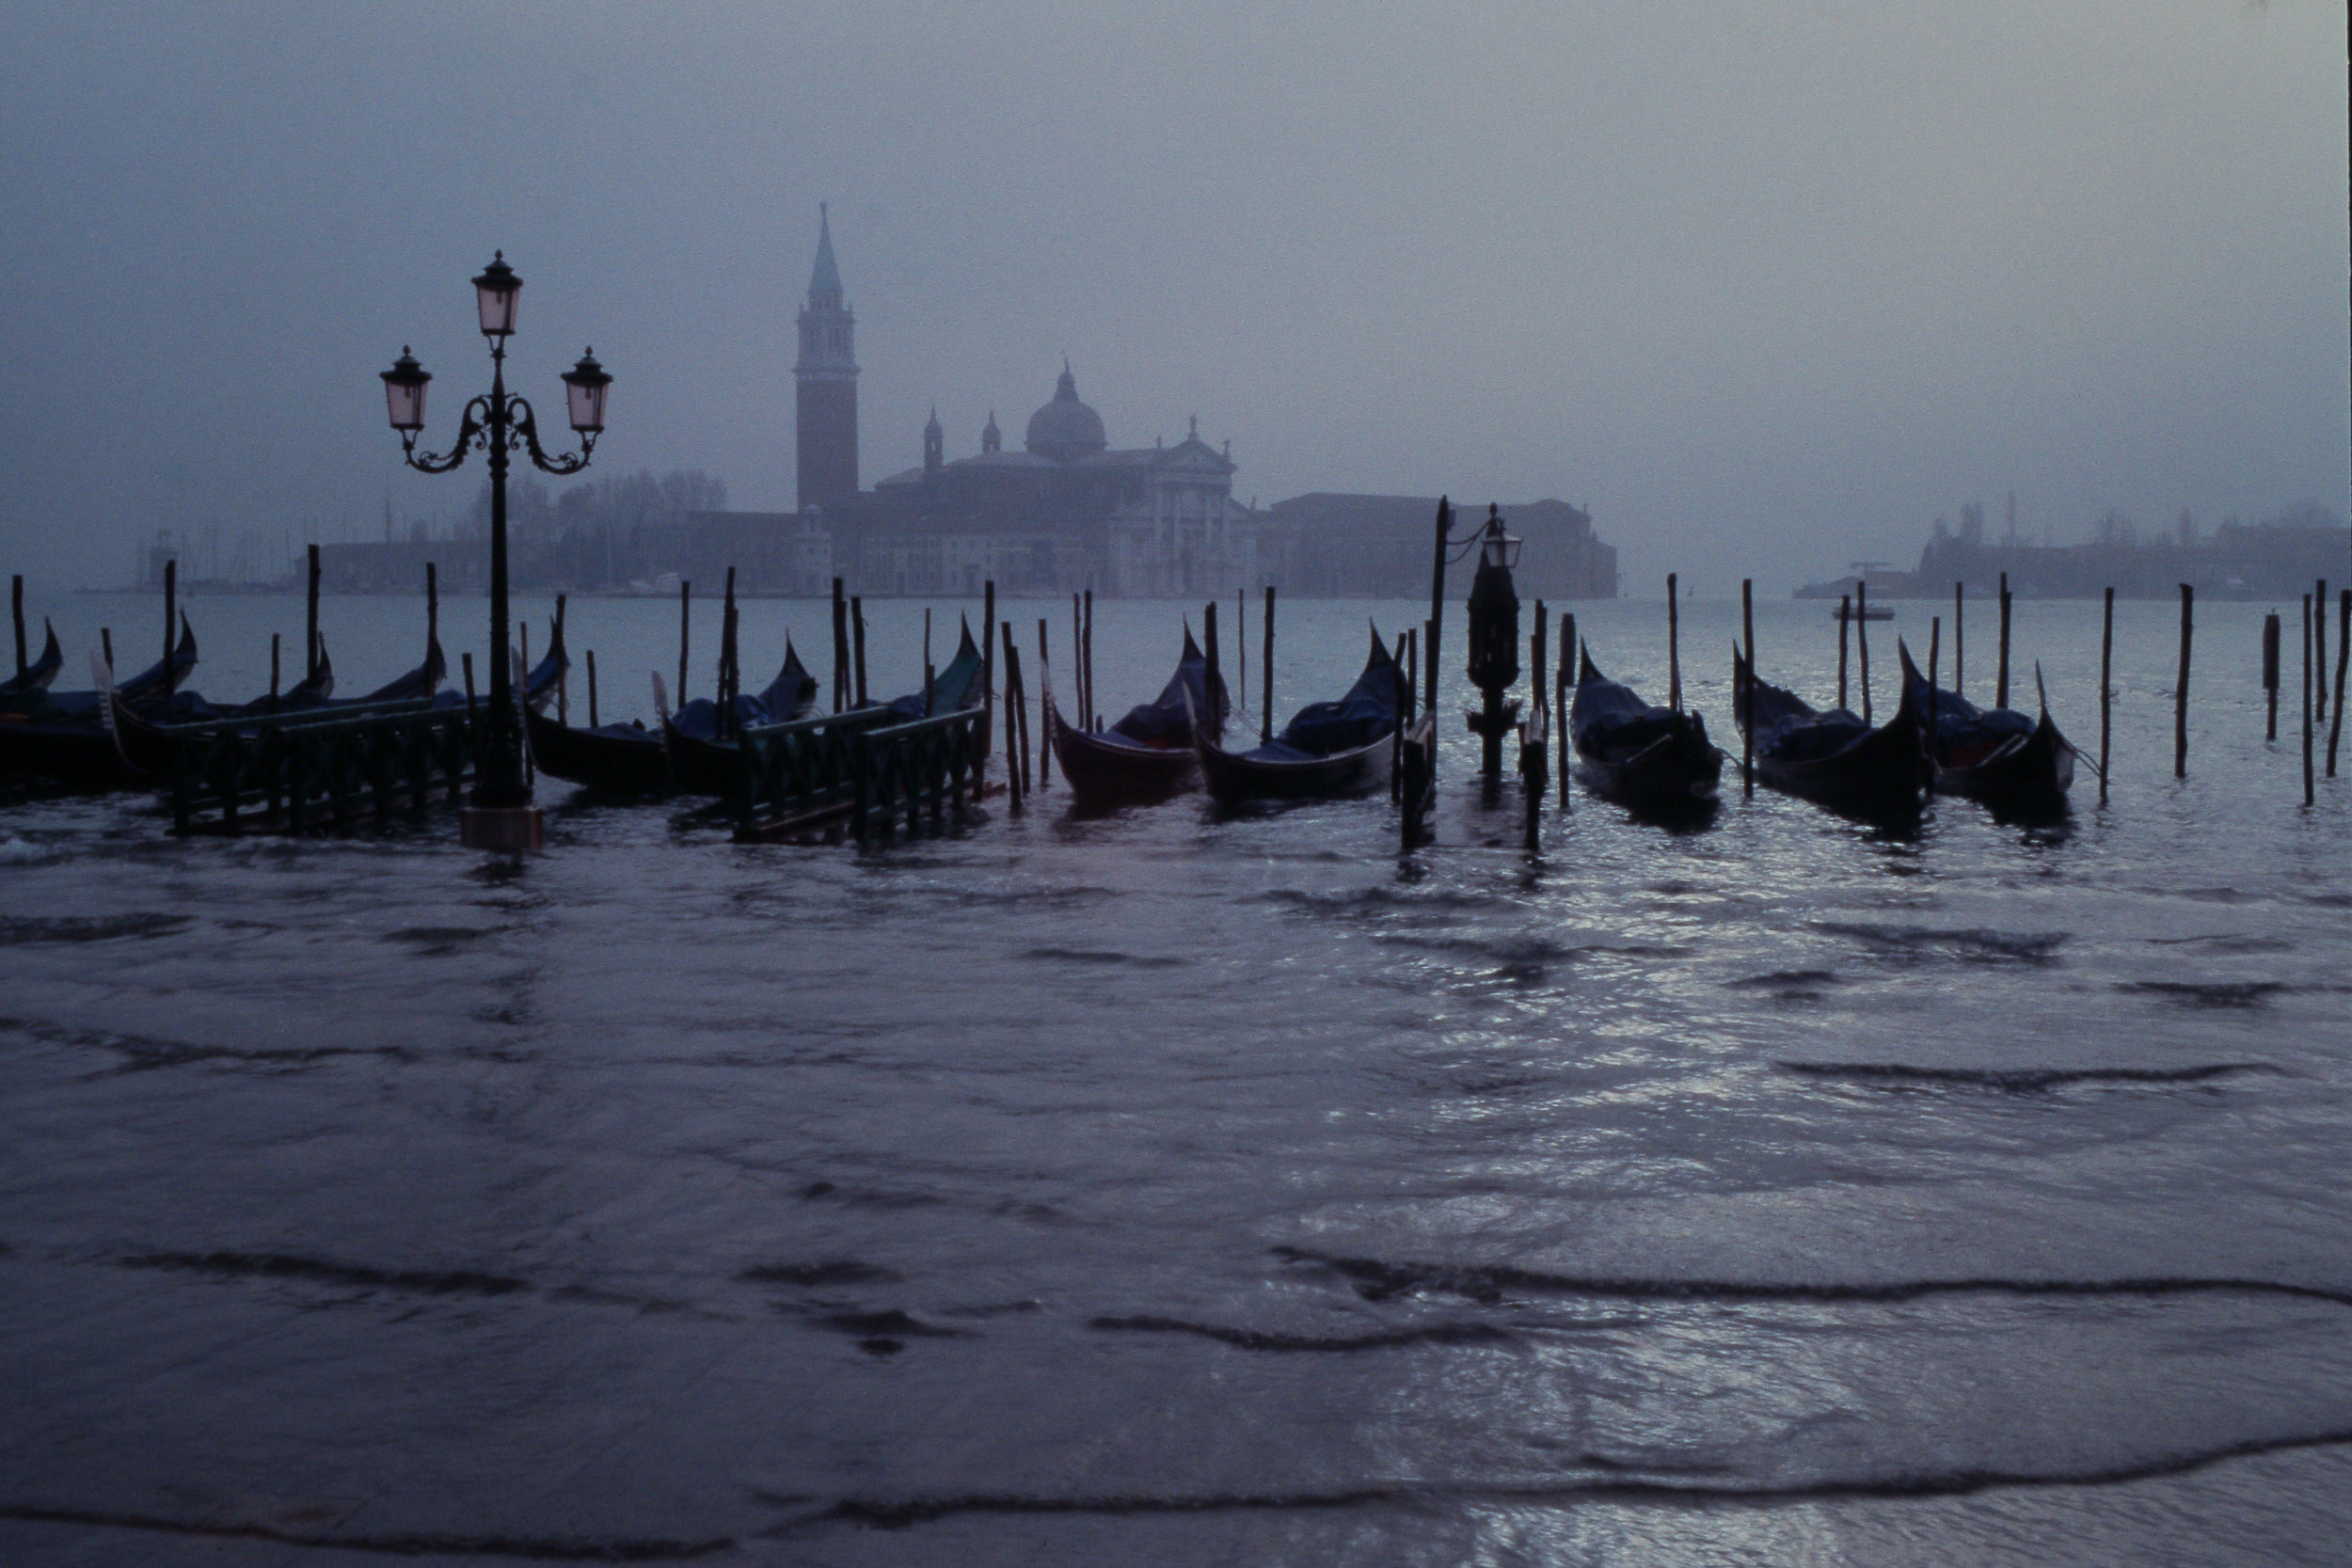 Venice at night with San Giorgio Maggiore seen from the flooded Piazza San Marco by Jorg Bittner via  Wikimedia Commons